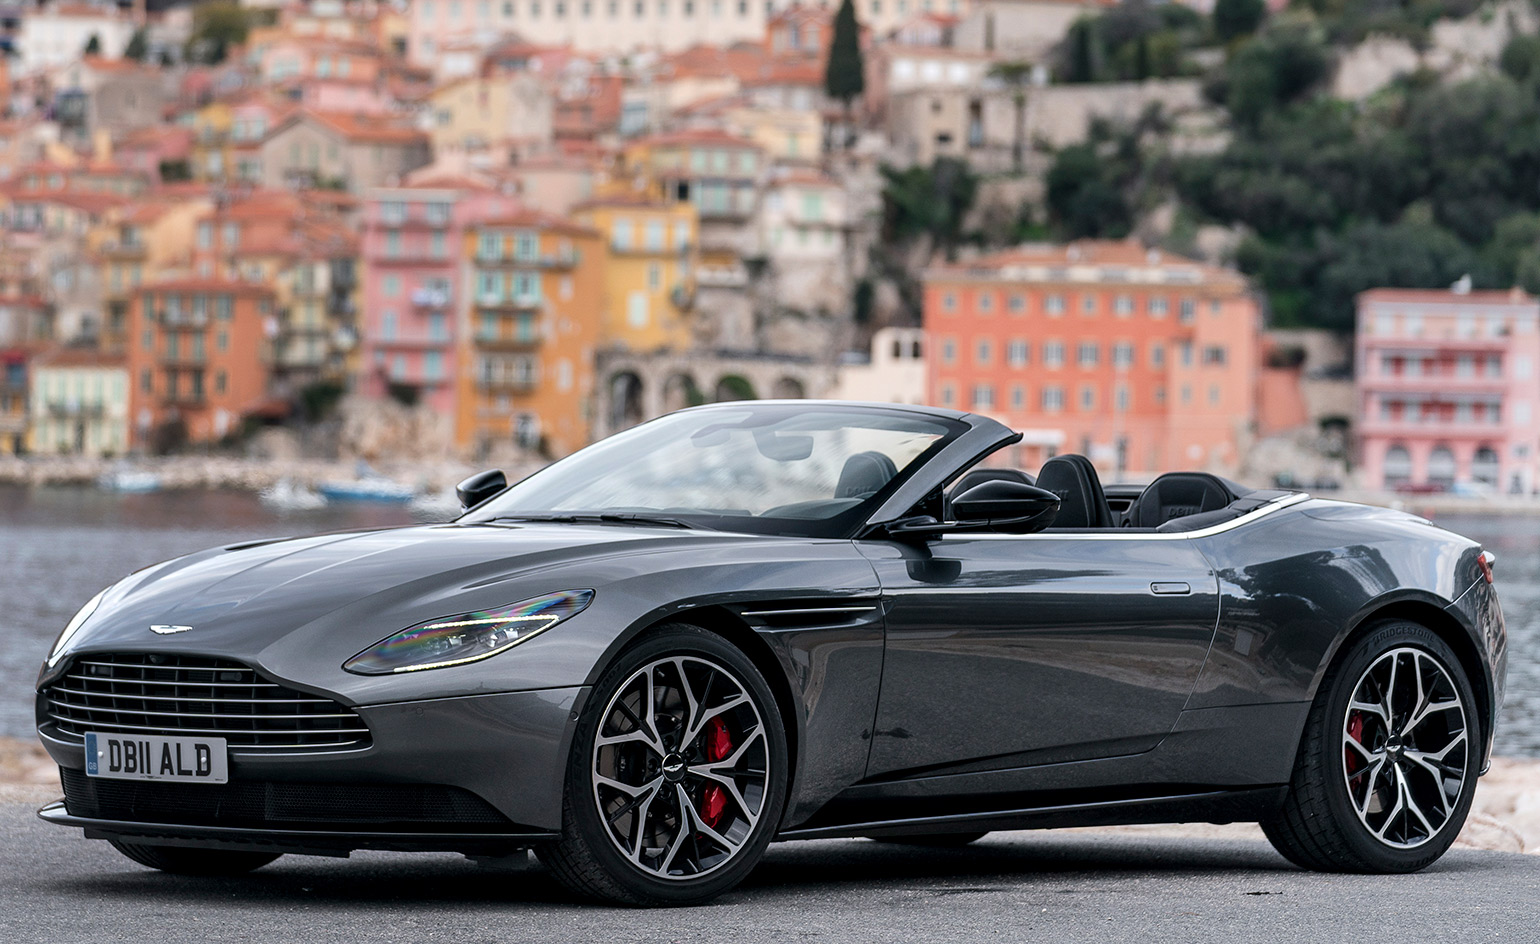 test driving the aston martin db11 volante in south france wallpaper. Black Bedroom Furniture Sets. Home Design Ideas